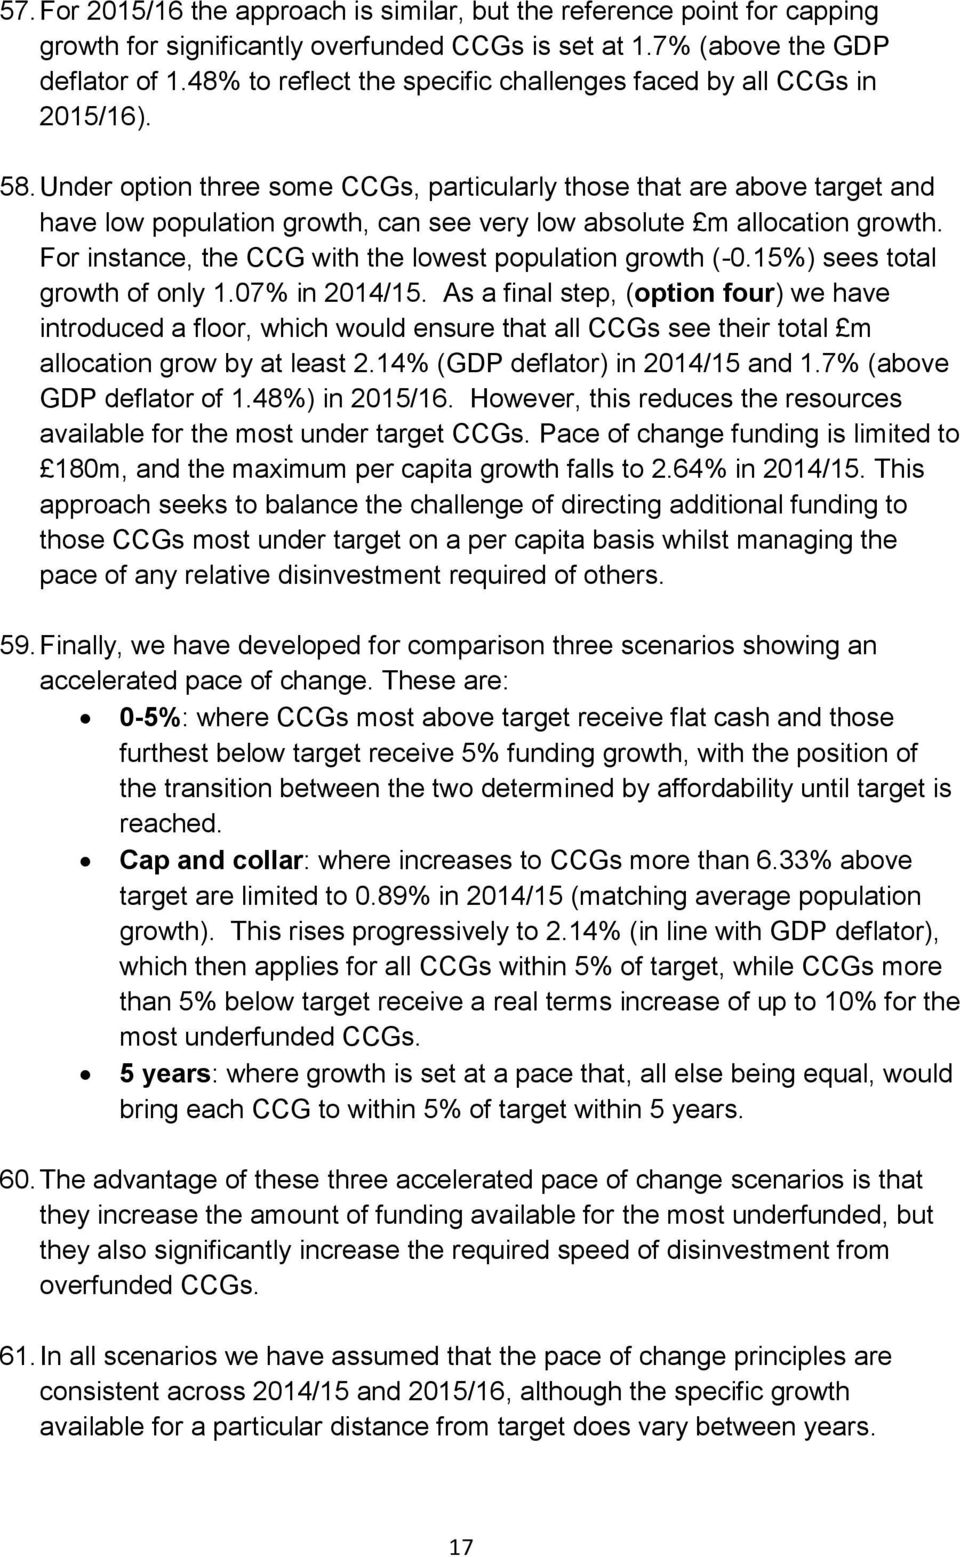 Under option three some CCGs, particularly those that are above target and have low population growth, can see very low absolute m allocation growth.